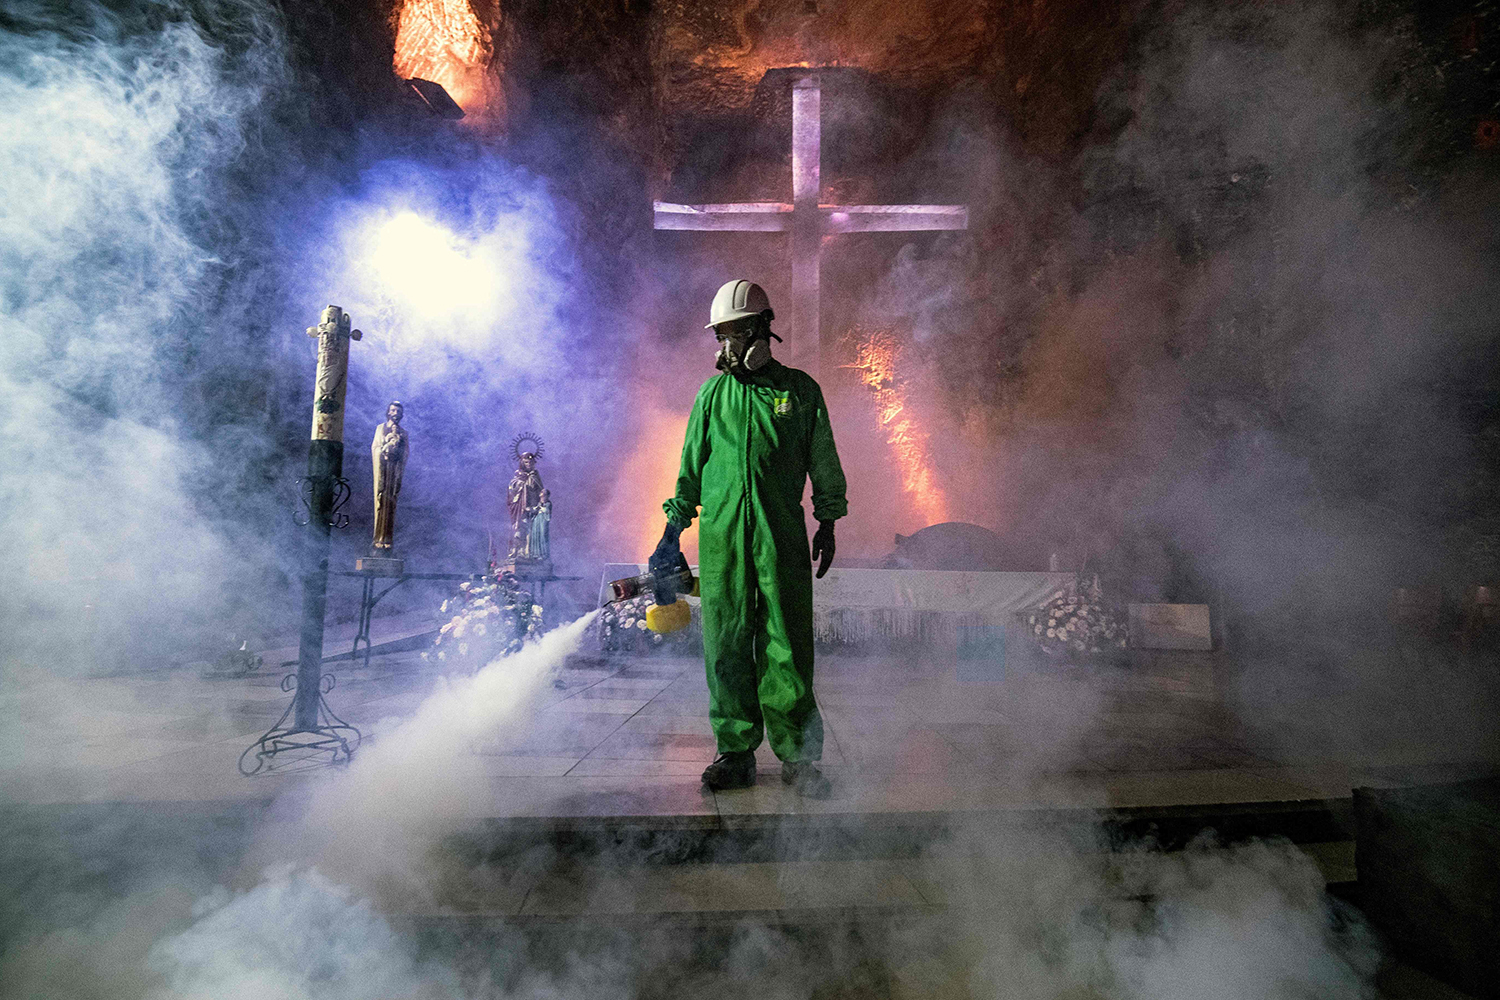 A worker disinfects the Salt Cathedral of Zipaquira, an underground church built into a salt mine, in Zipaquira, Colombia, on Aug. 30. The Salt Cathedral, one of Colombia's main tourist attractions, is waiting for an authorization from the Health Ministry to reopen in the midst of the pandemic. JUAN BARRETO/AFP via Getty Images